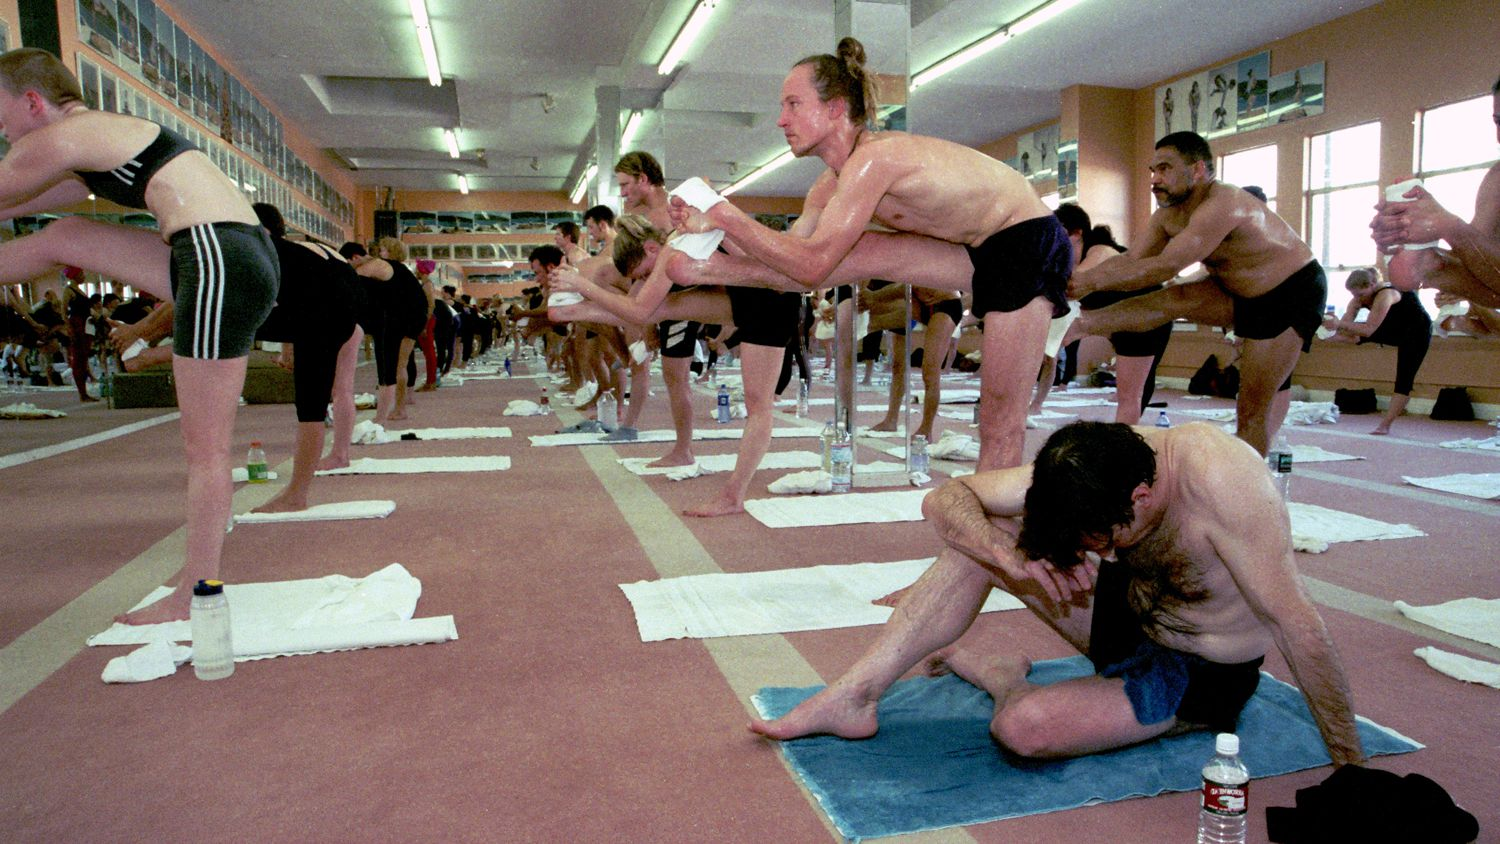 Research On The Safety Of Bikram Yoga